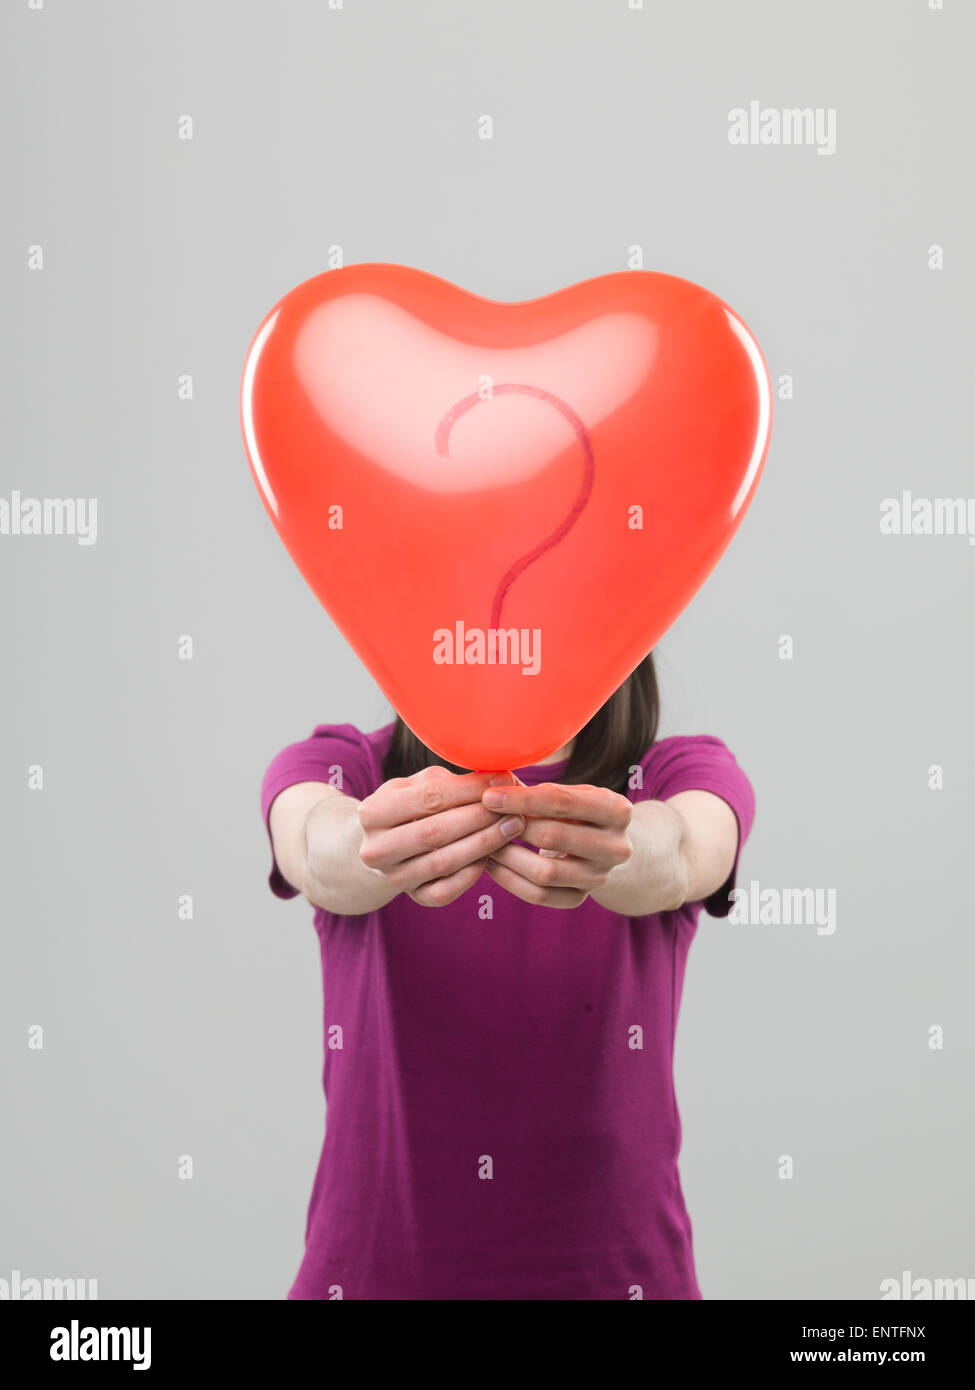 caucasian woman holding heart shaped balloon with question mark in front of her head, against grey background - Stock Image